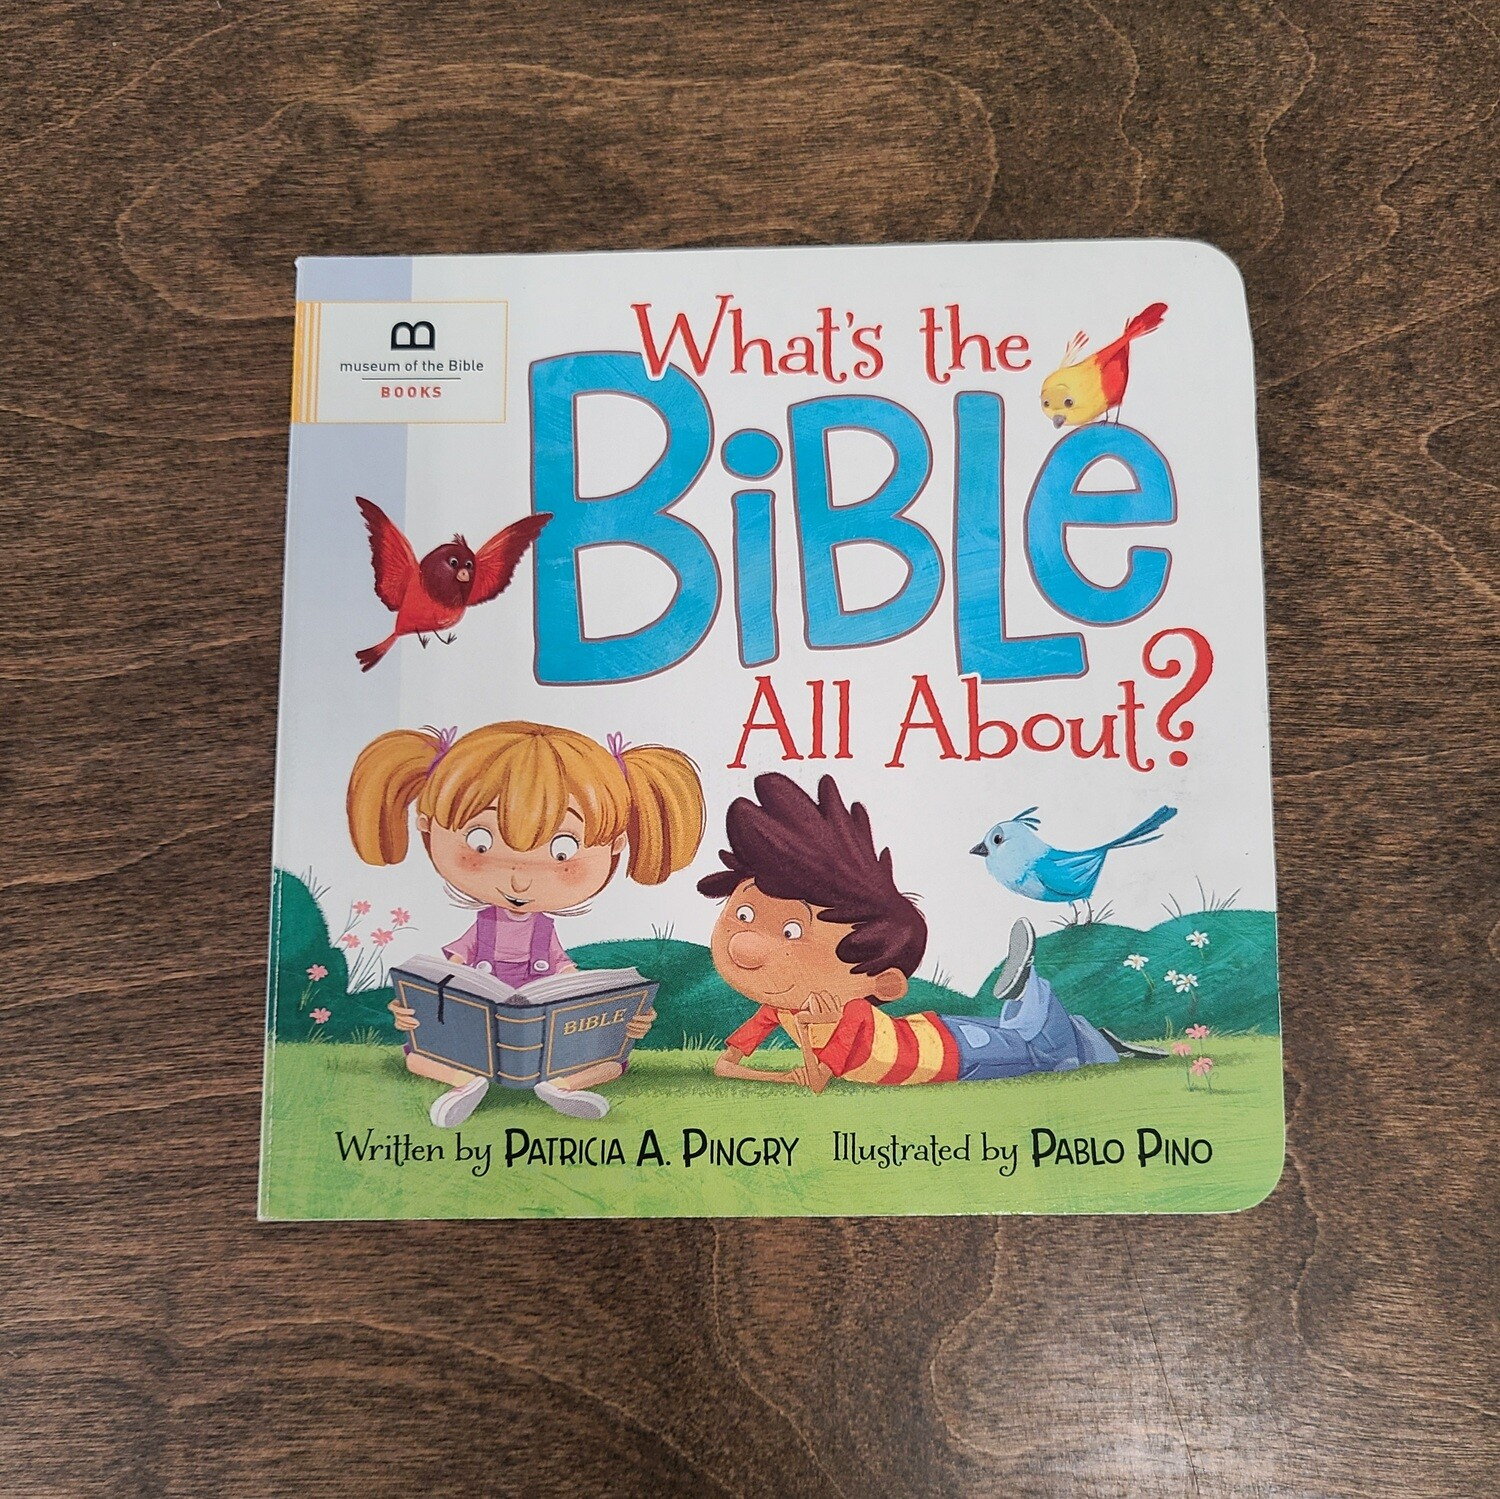 What's the Bible all About? by Patricia A. Pingry and Pablo Pino